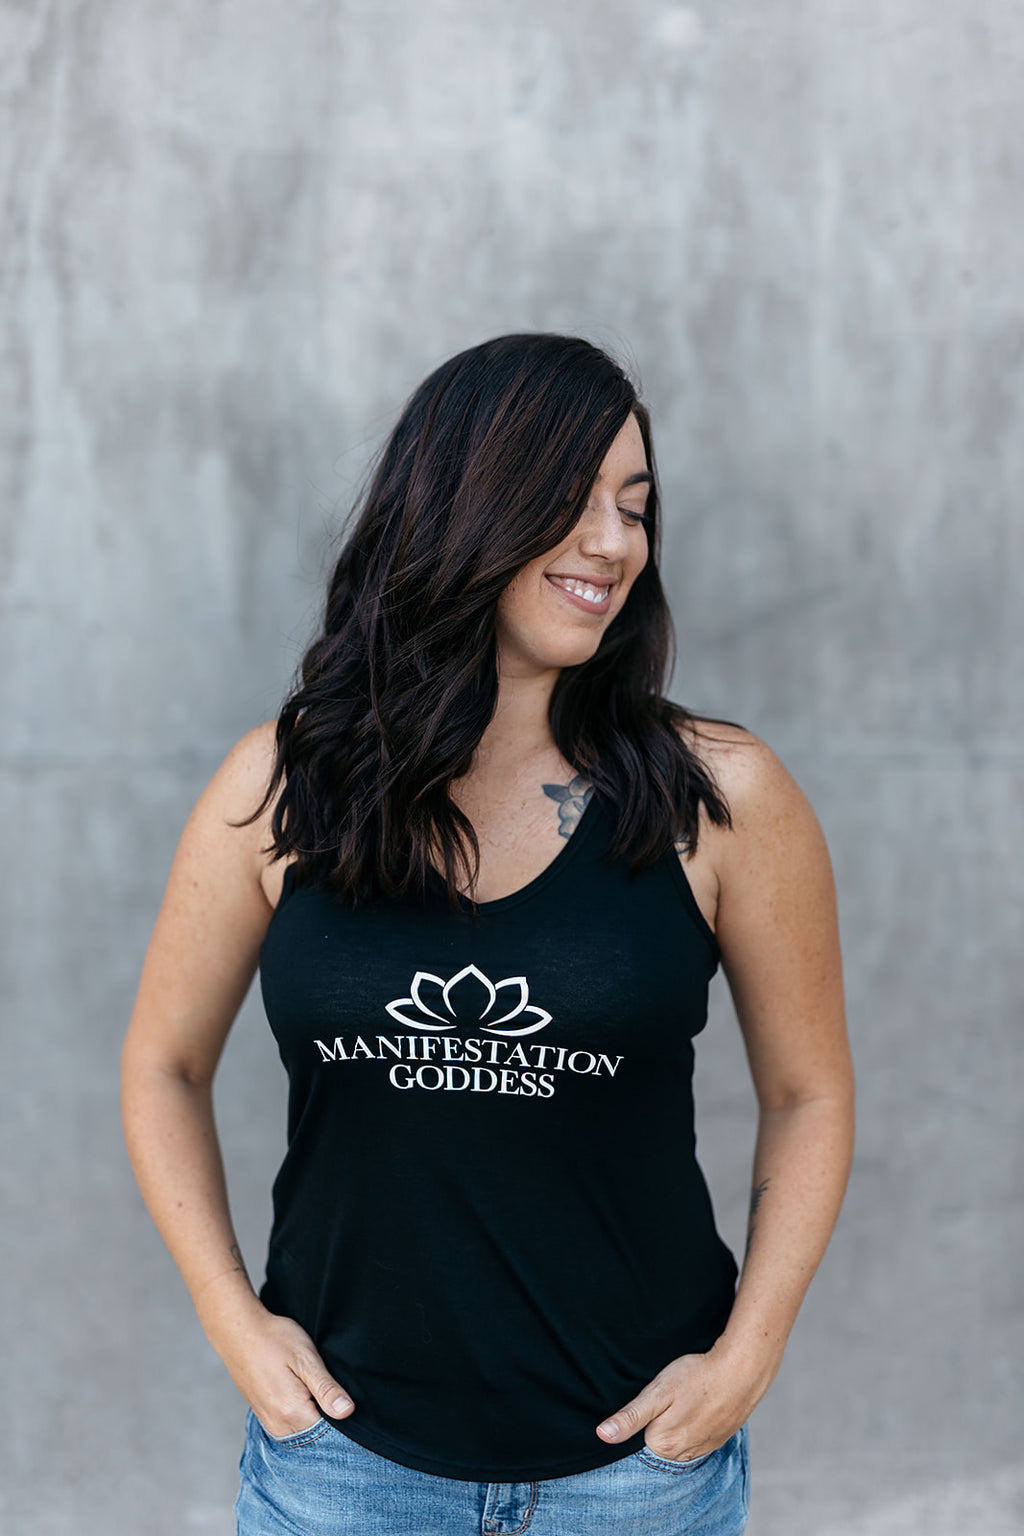 Manifestation Goddess V-Neck Tank - everlur spiritual clothing